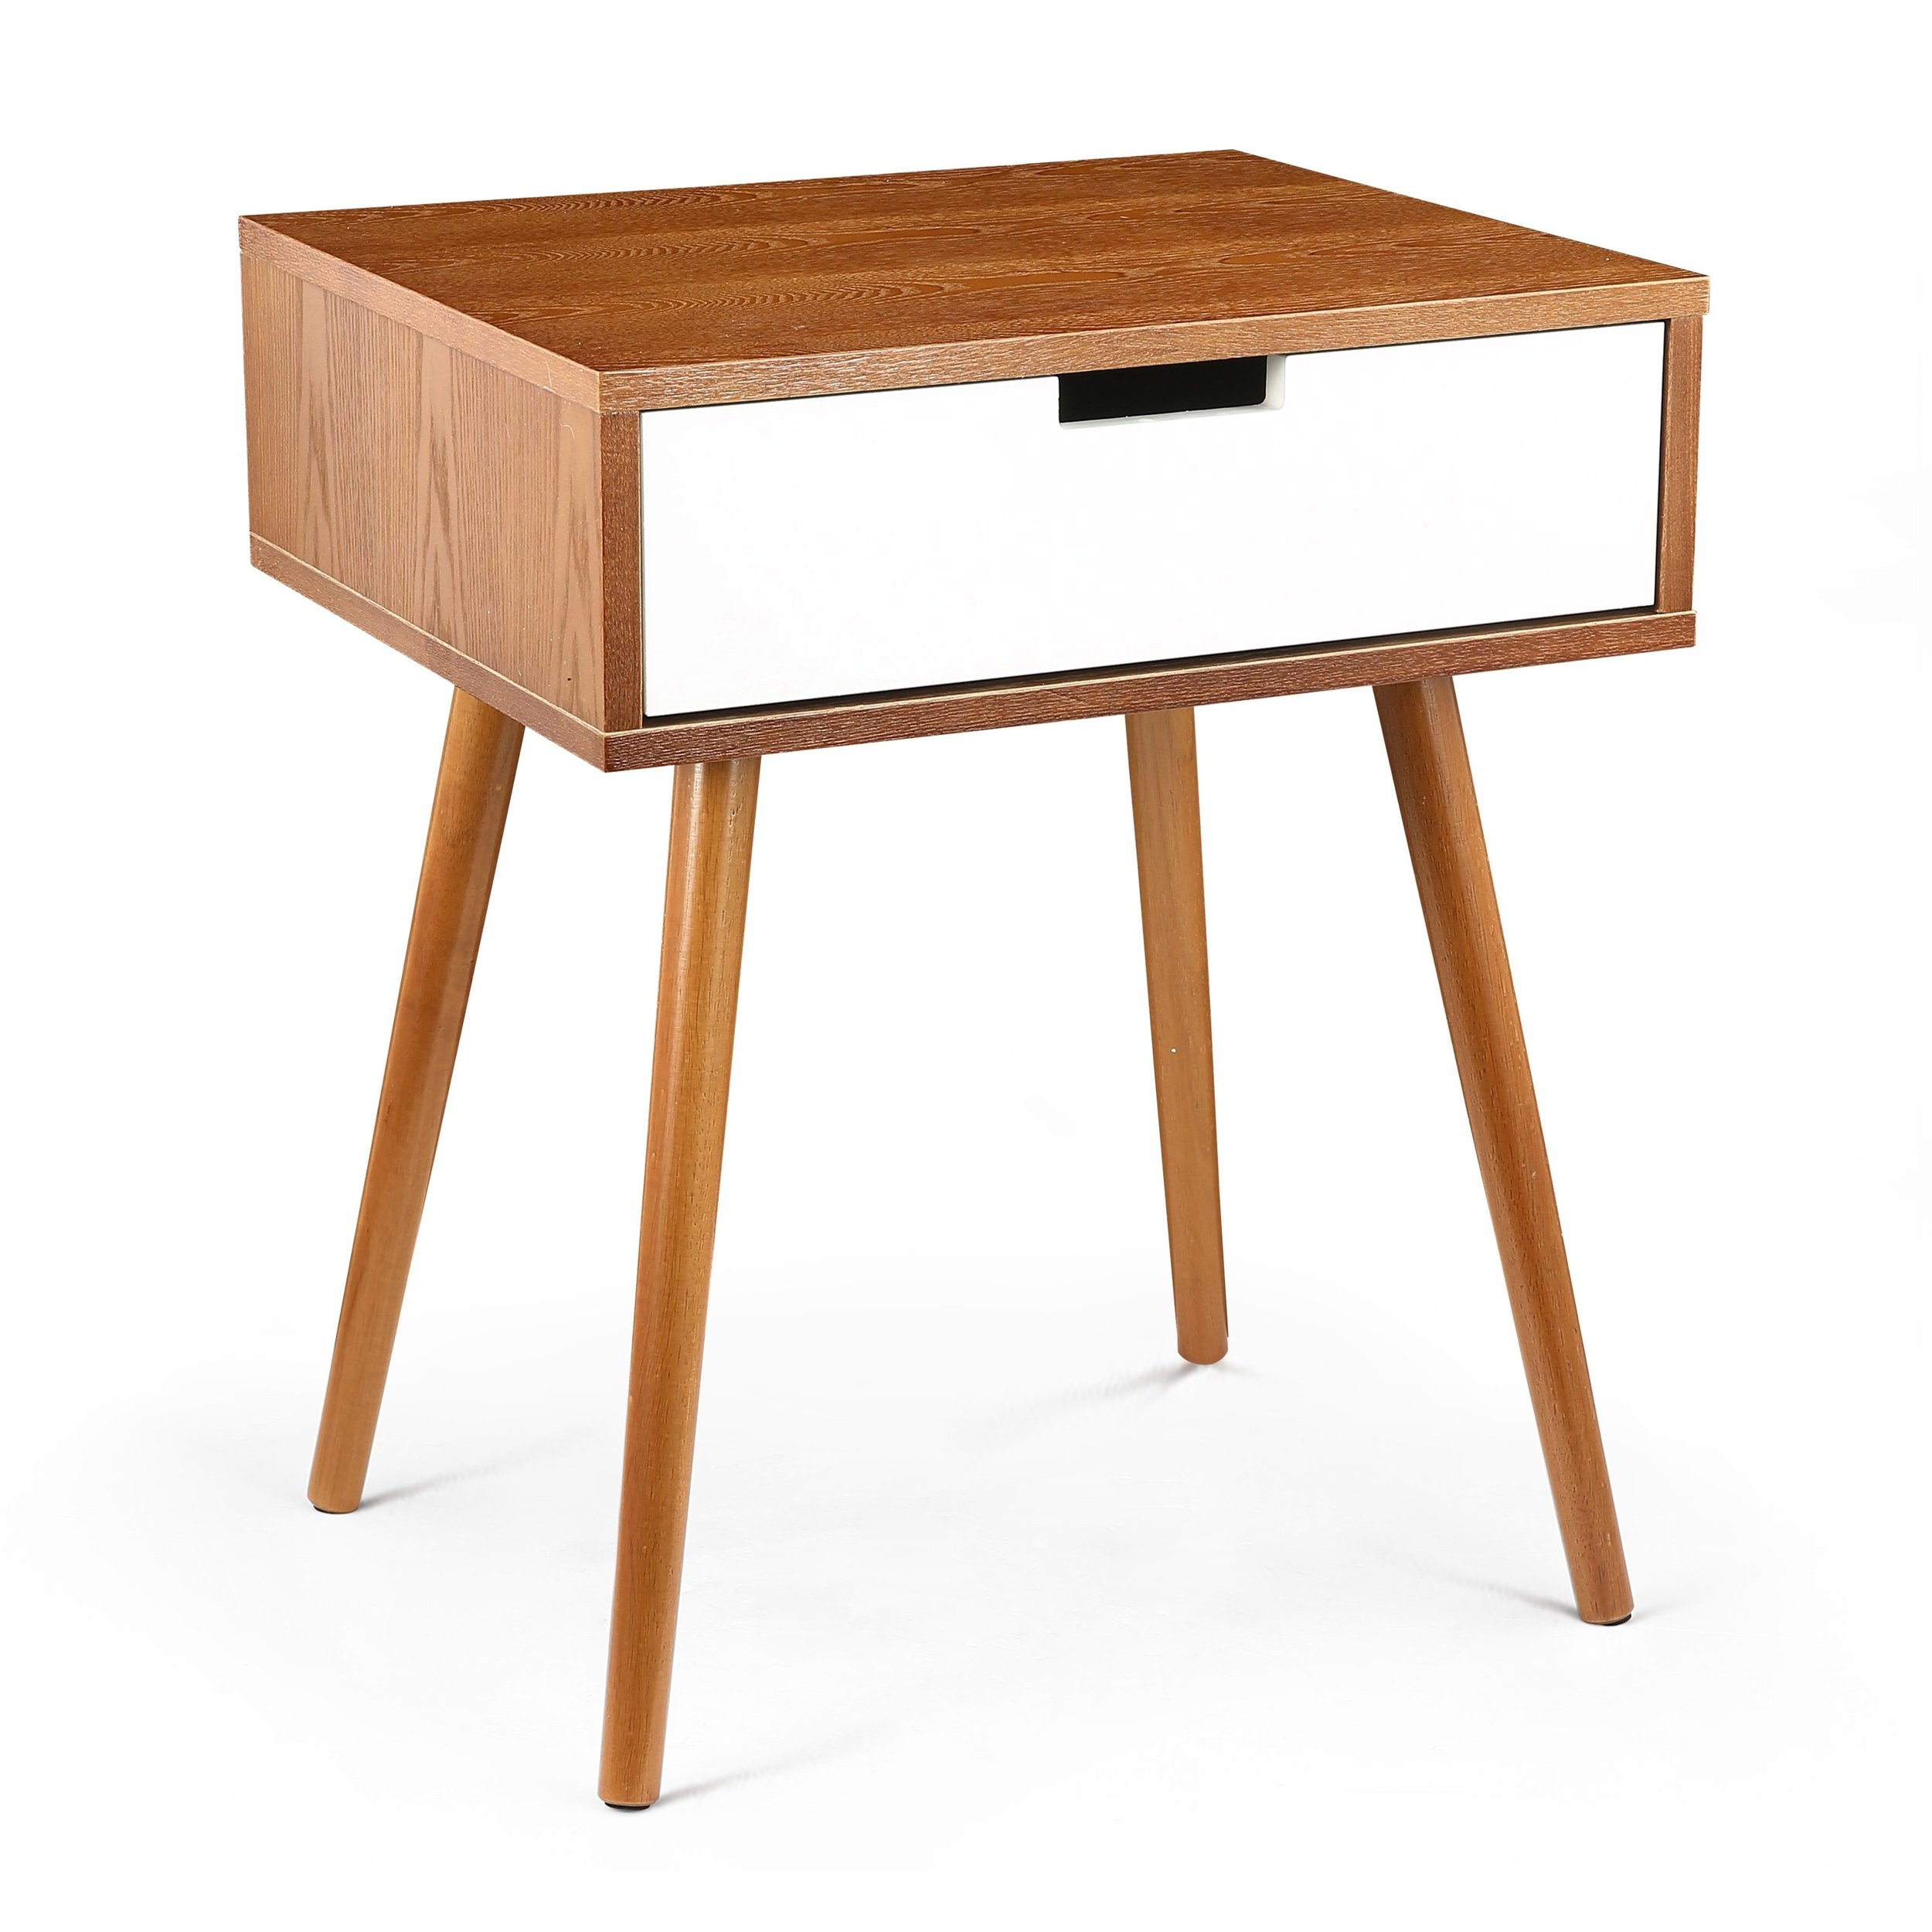 Sylvester Side Table from Poly and Bark